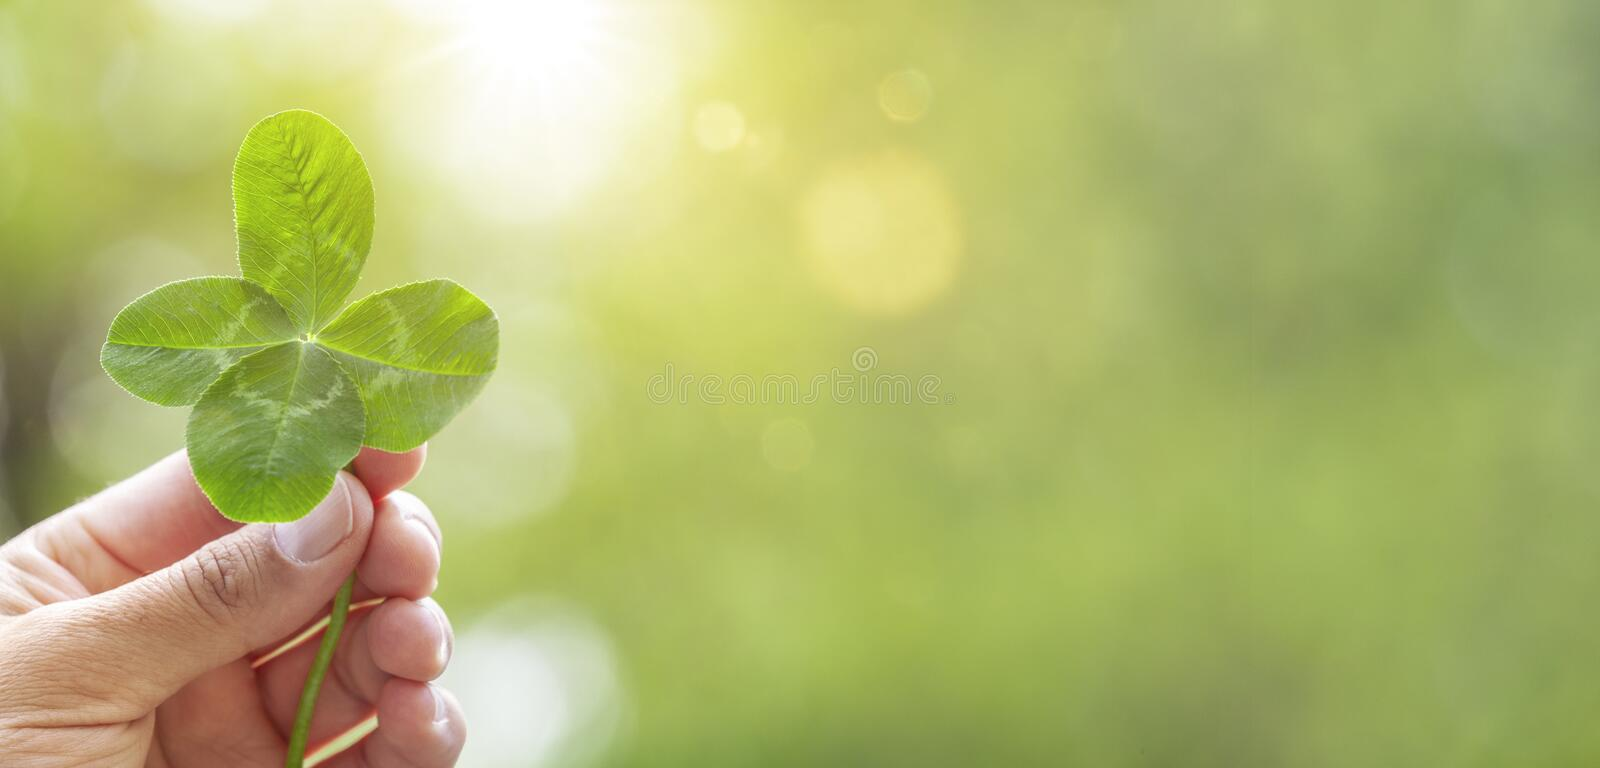 Four Leaf Clover in Hand royalty free stock photos